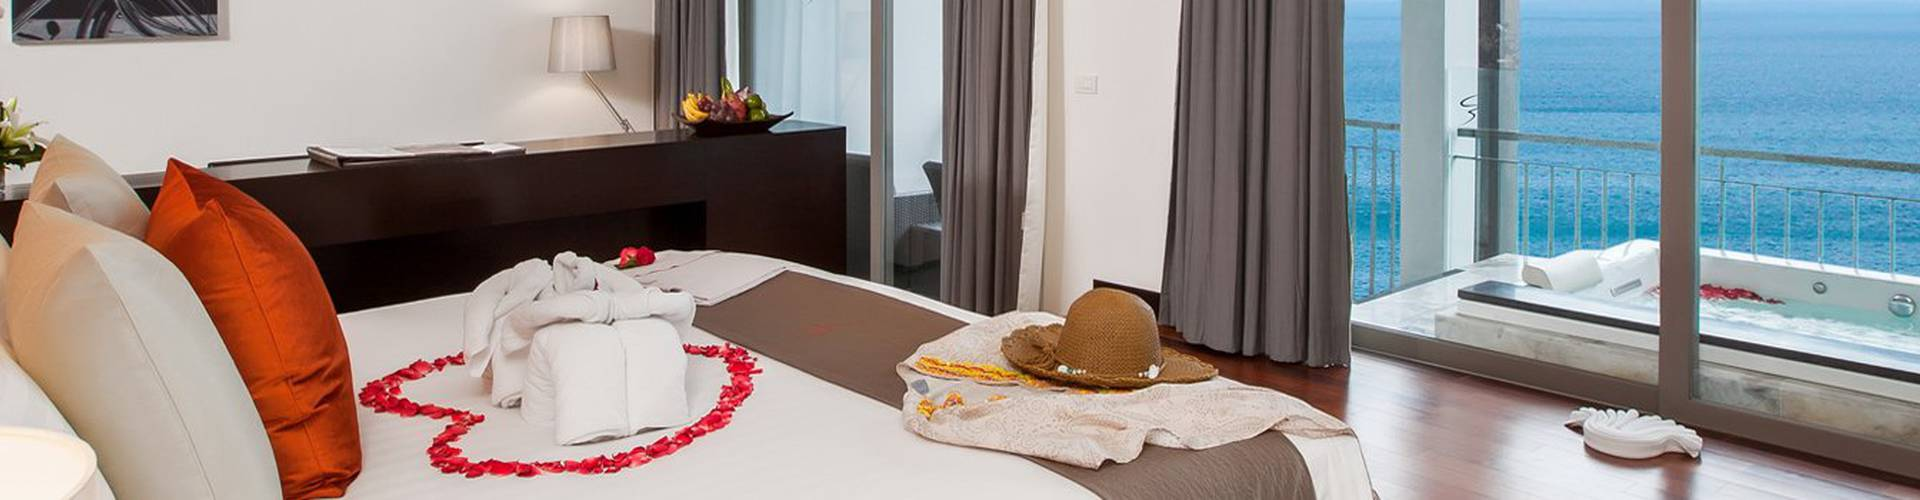 Cape Sienna Phuket Gourmet Hotel & Villas - Phuket - Reviews